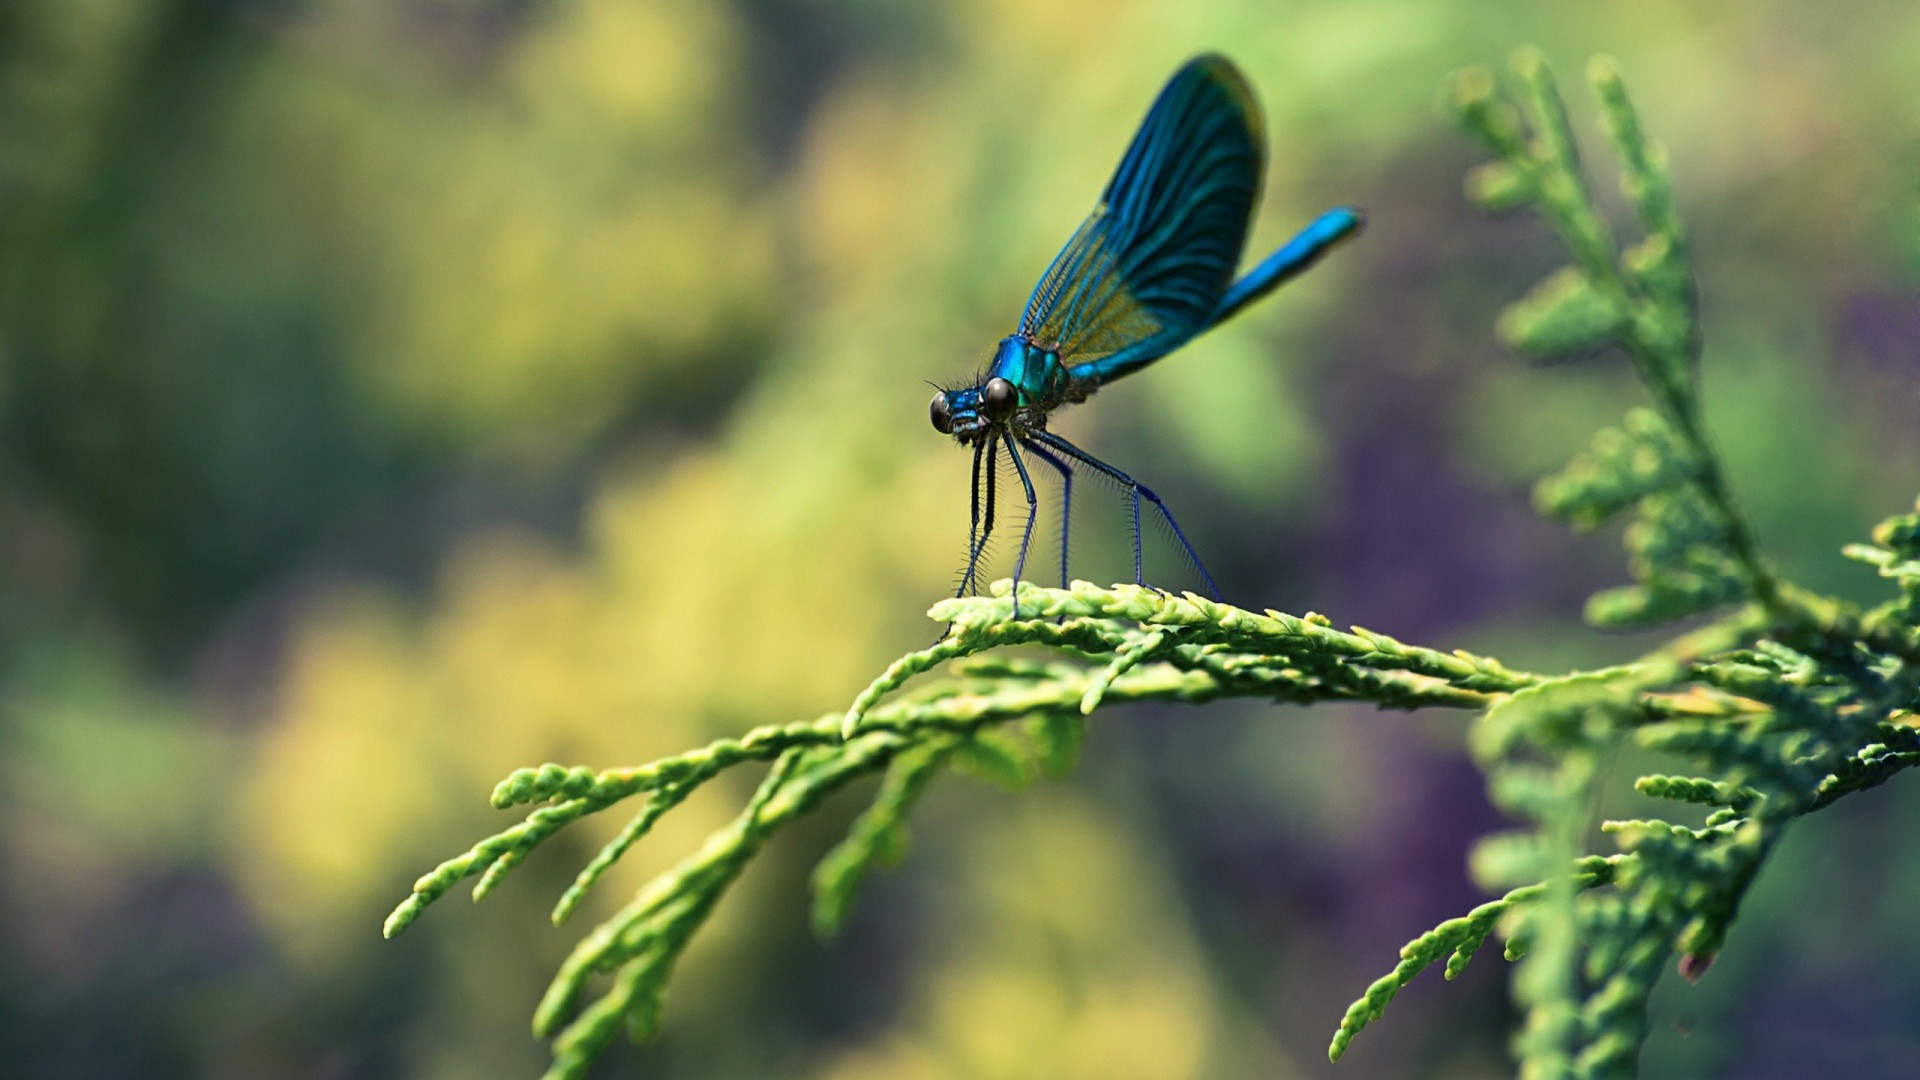 Blue Dragonfly Macro Wallpaper   New HD Wallpapers 1920x1080